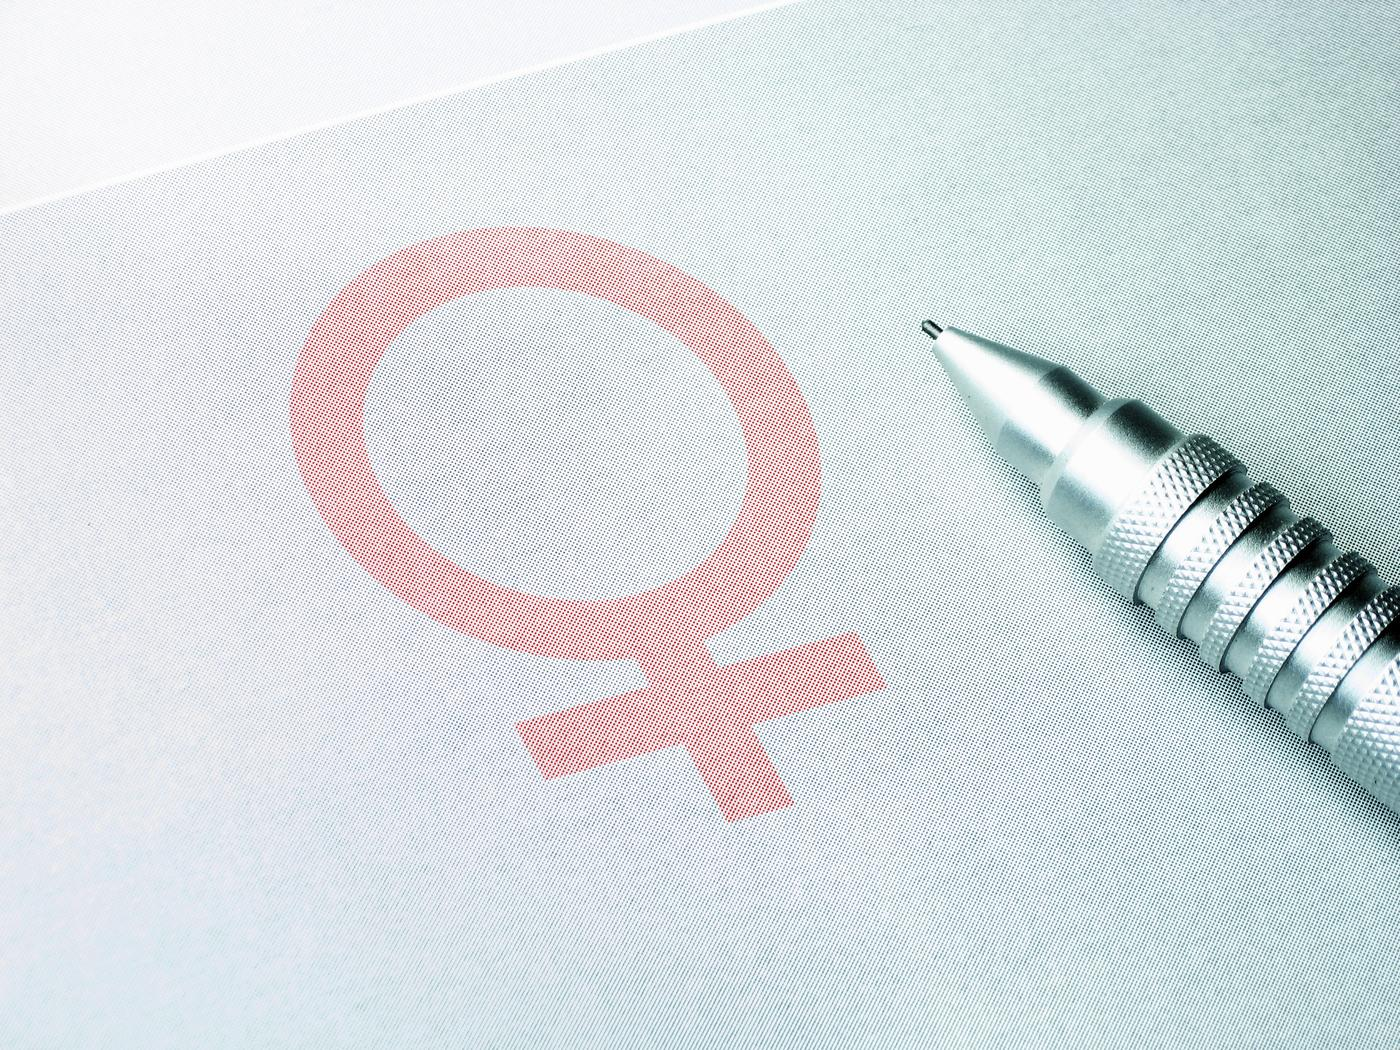 13 things feminists are sick of hearing